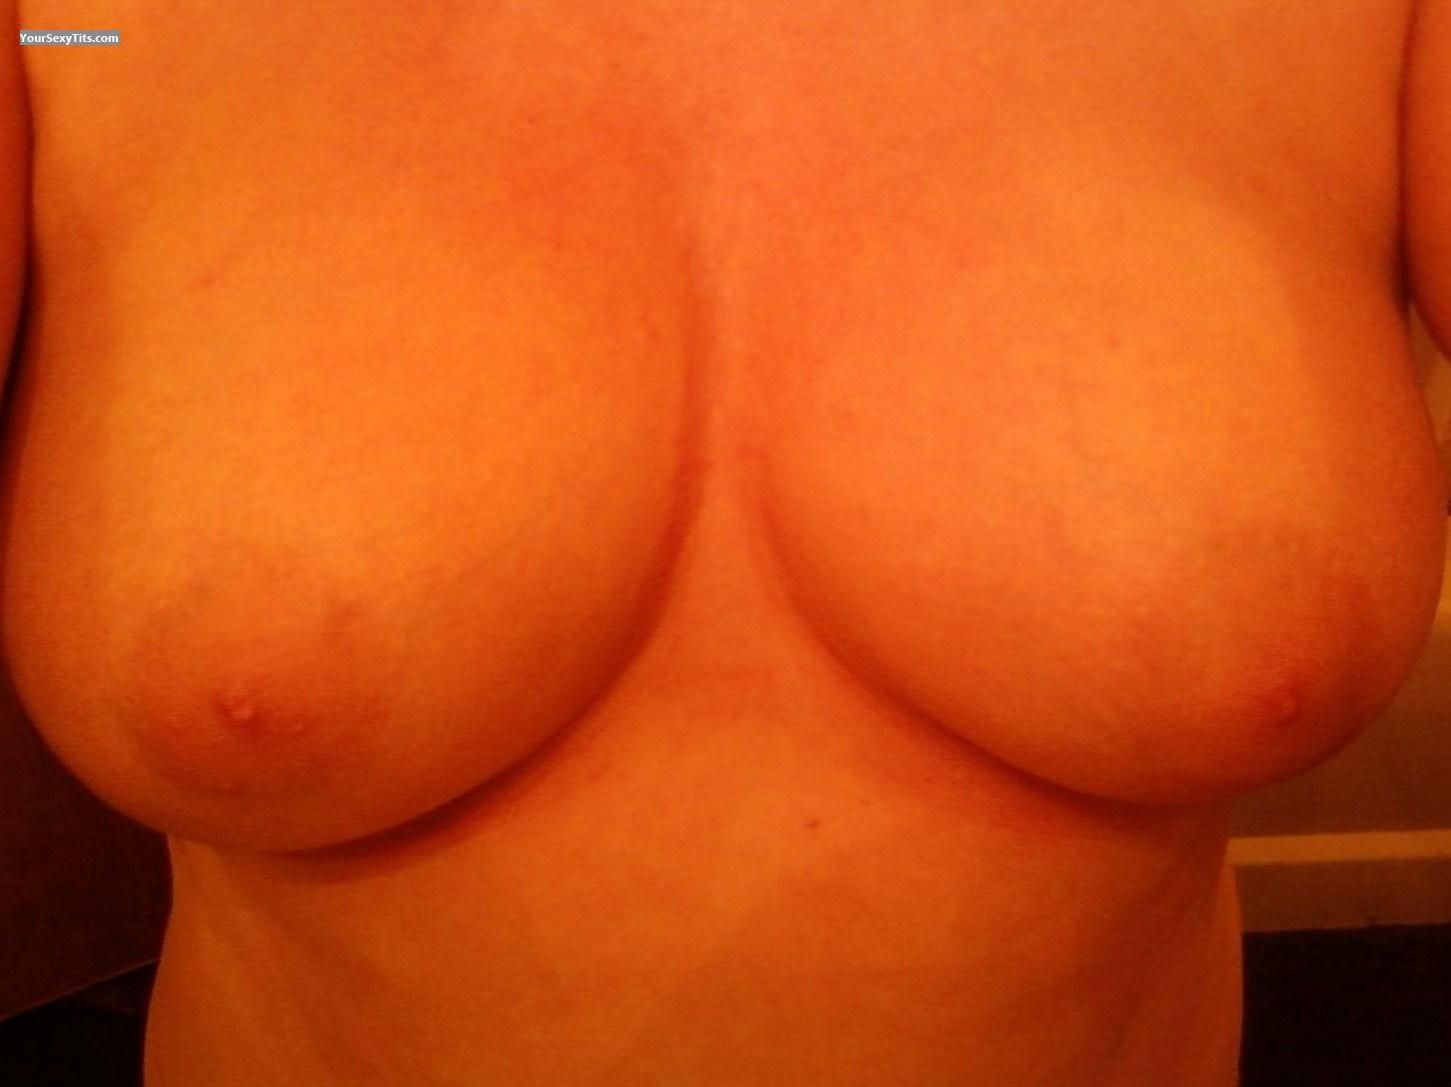 Tit Flash: My Medium Tits (Selfie) - Hot J! from United States